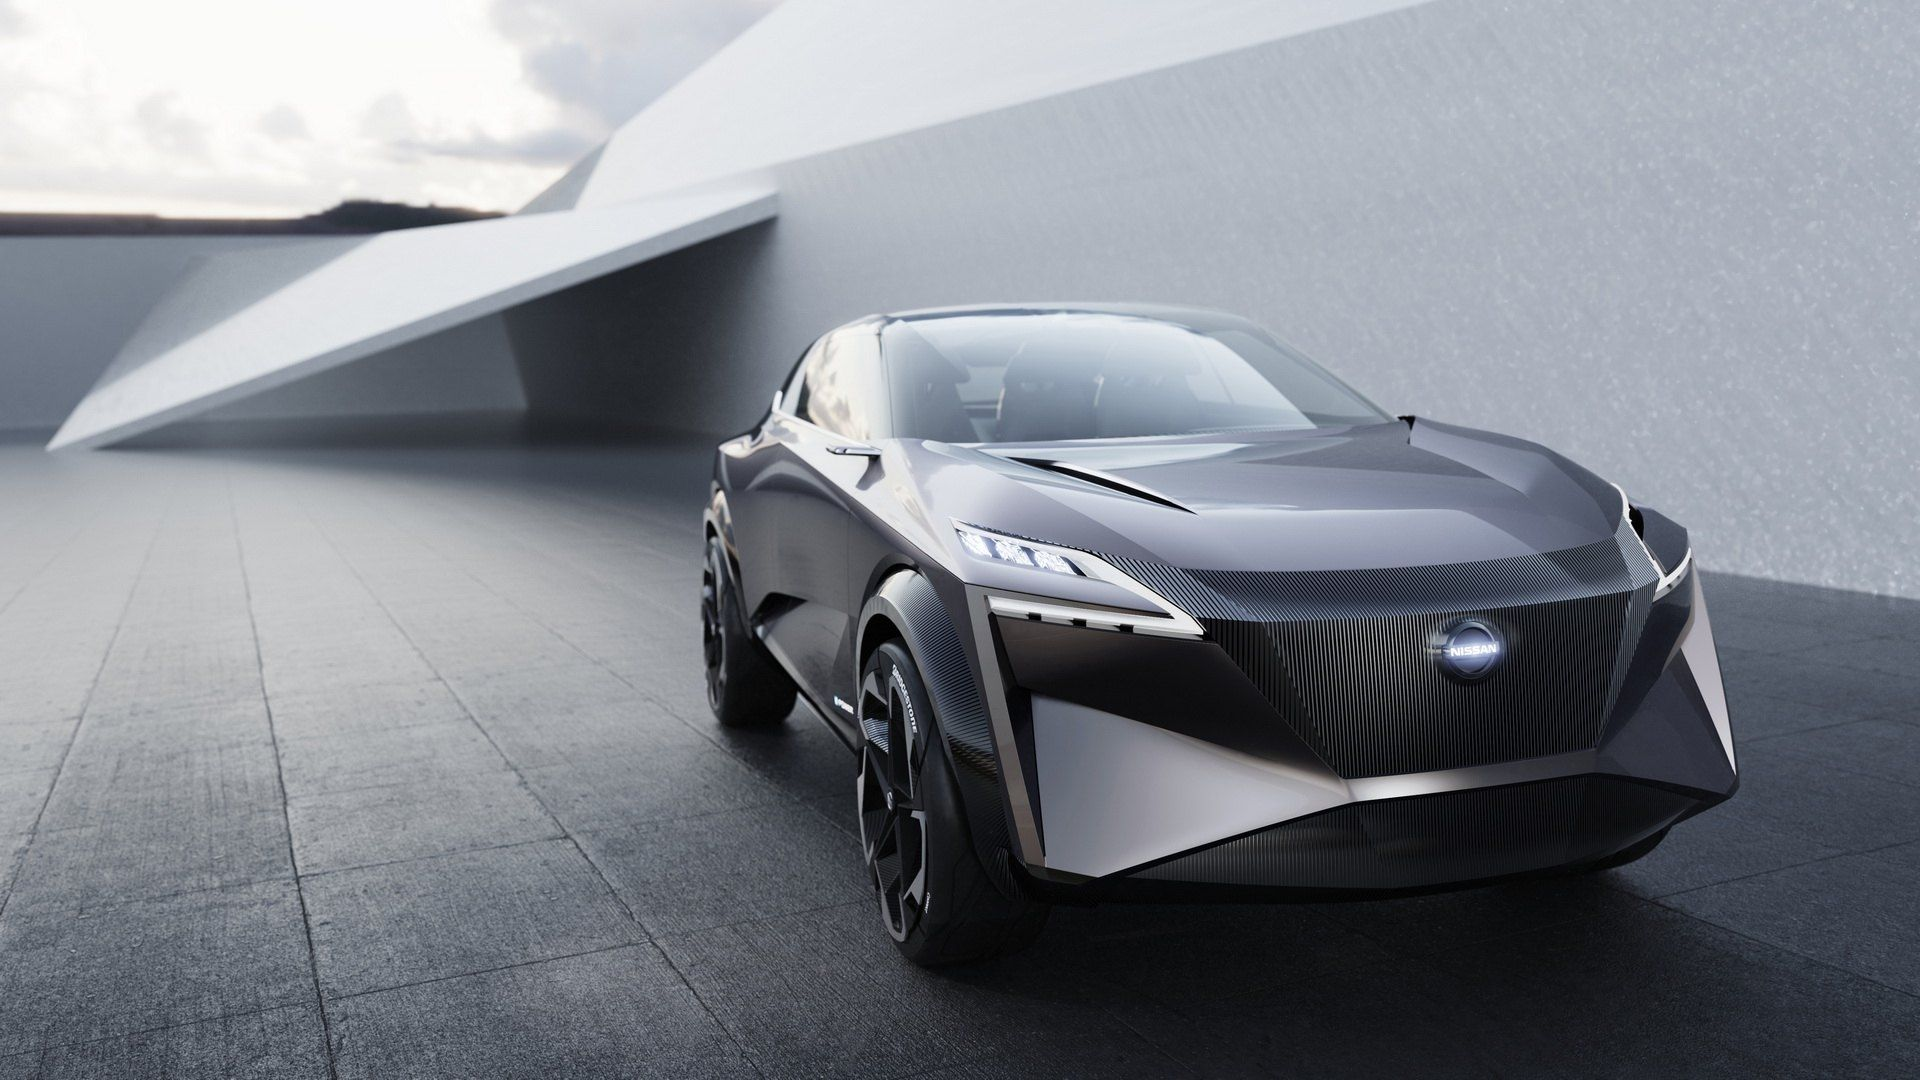 Top 2020 Nissan Imq Price Specs Nissan Upcoming Cars Concept Cars